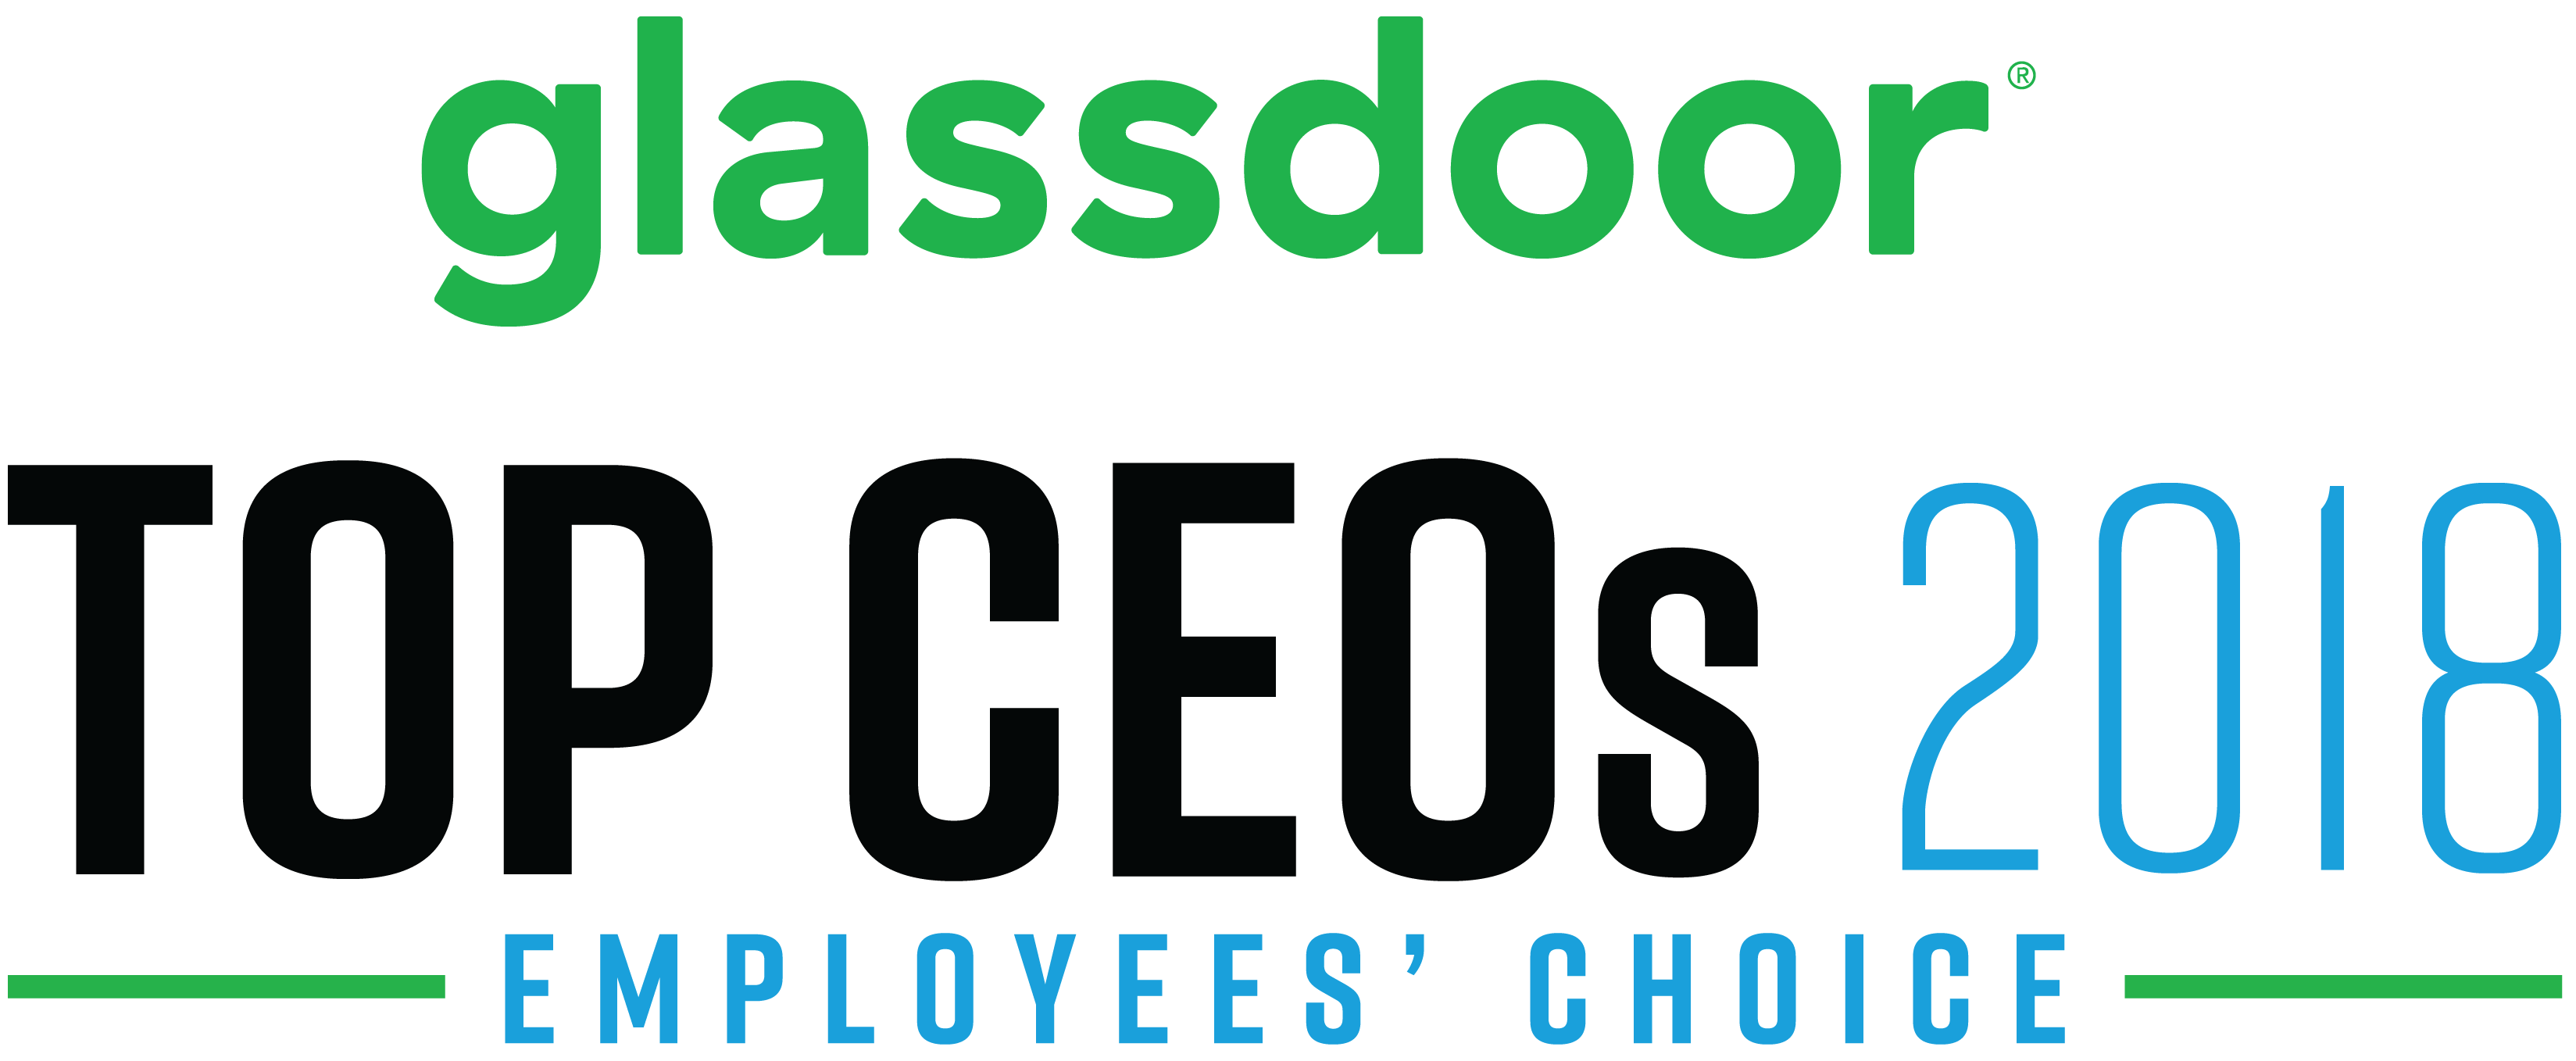 Glassdoor Top CEO 2018 Bill Mills of Explore Learning